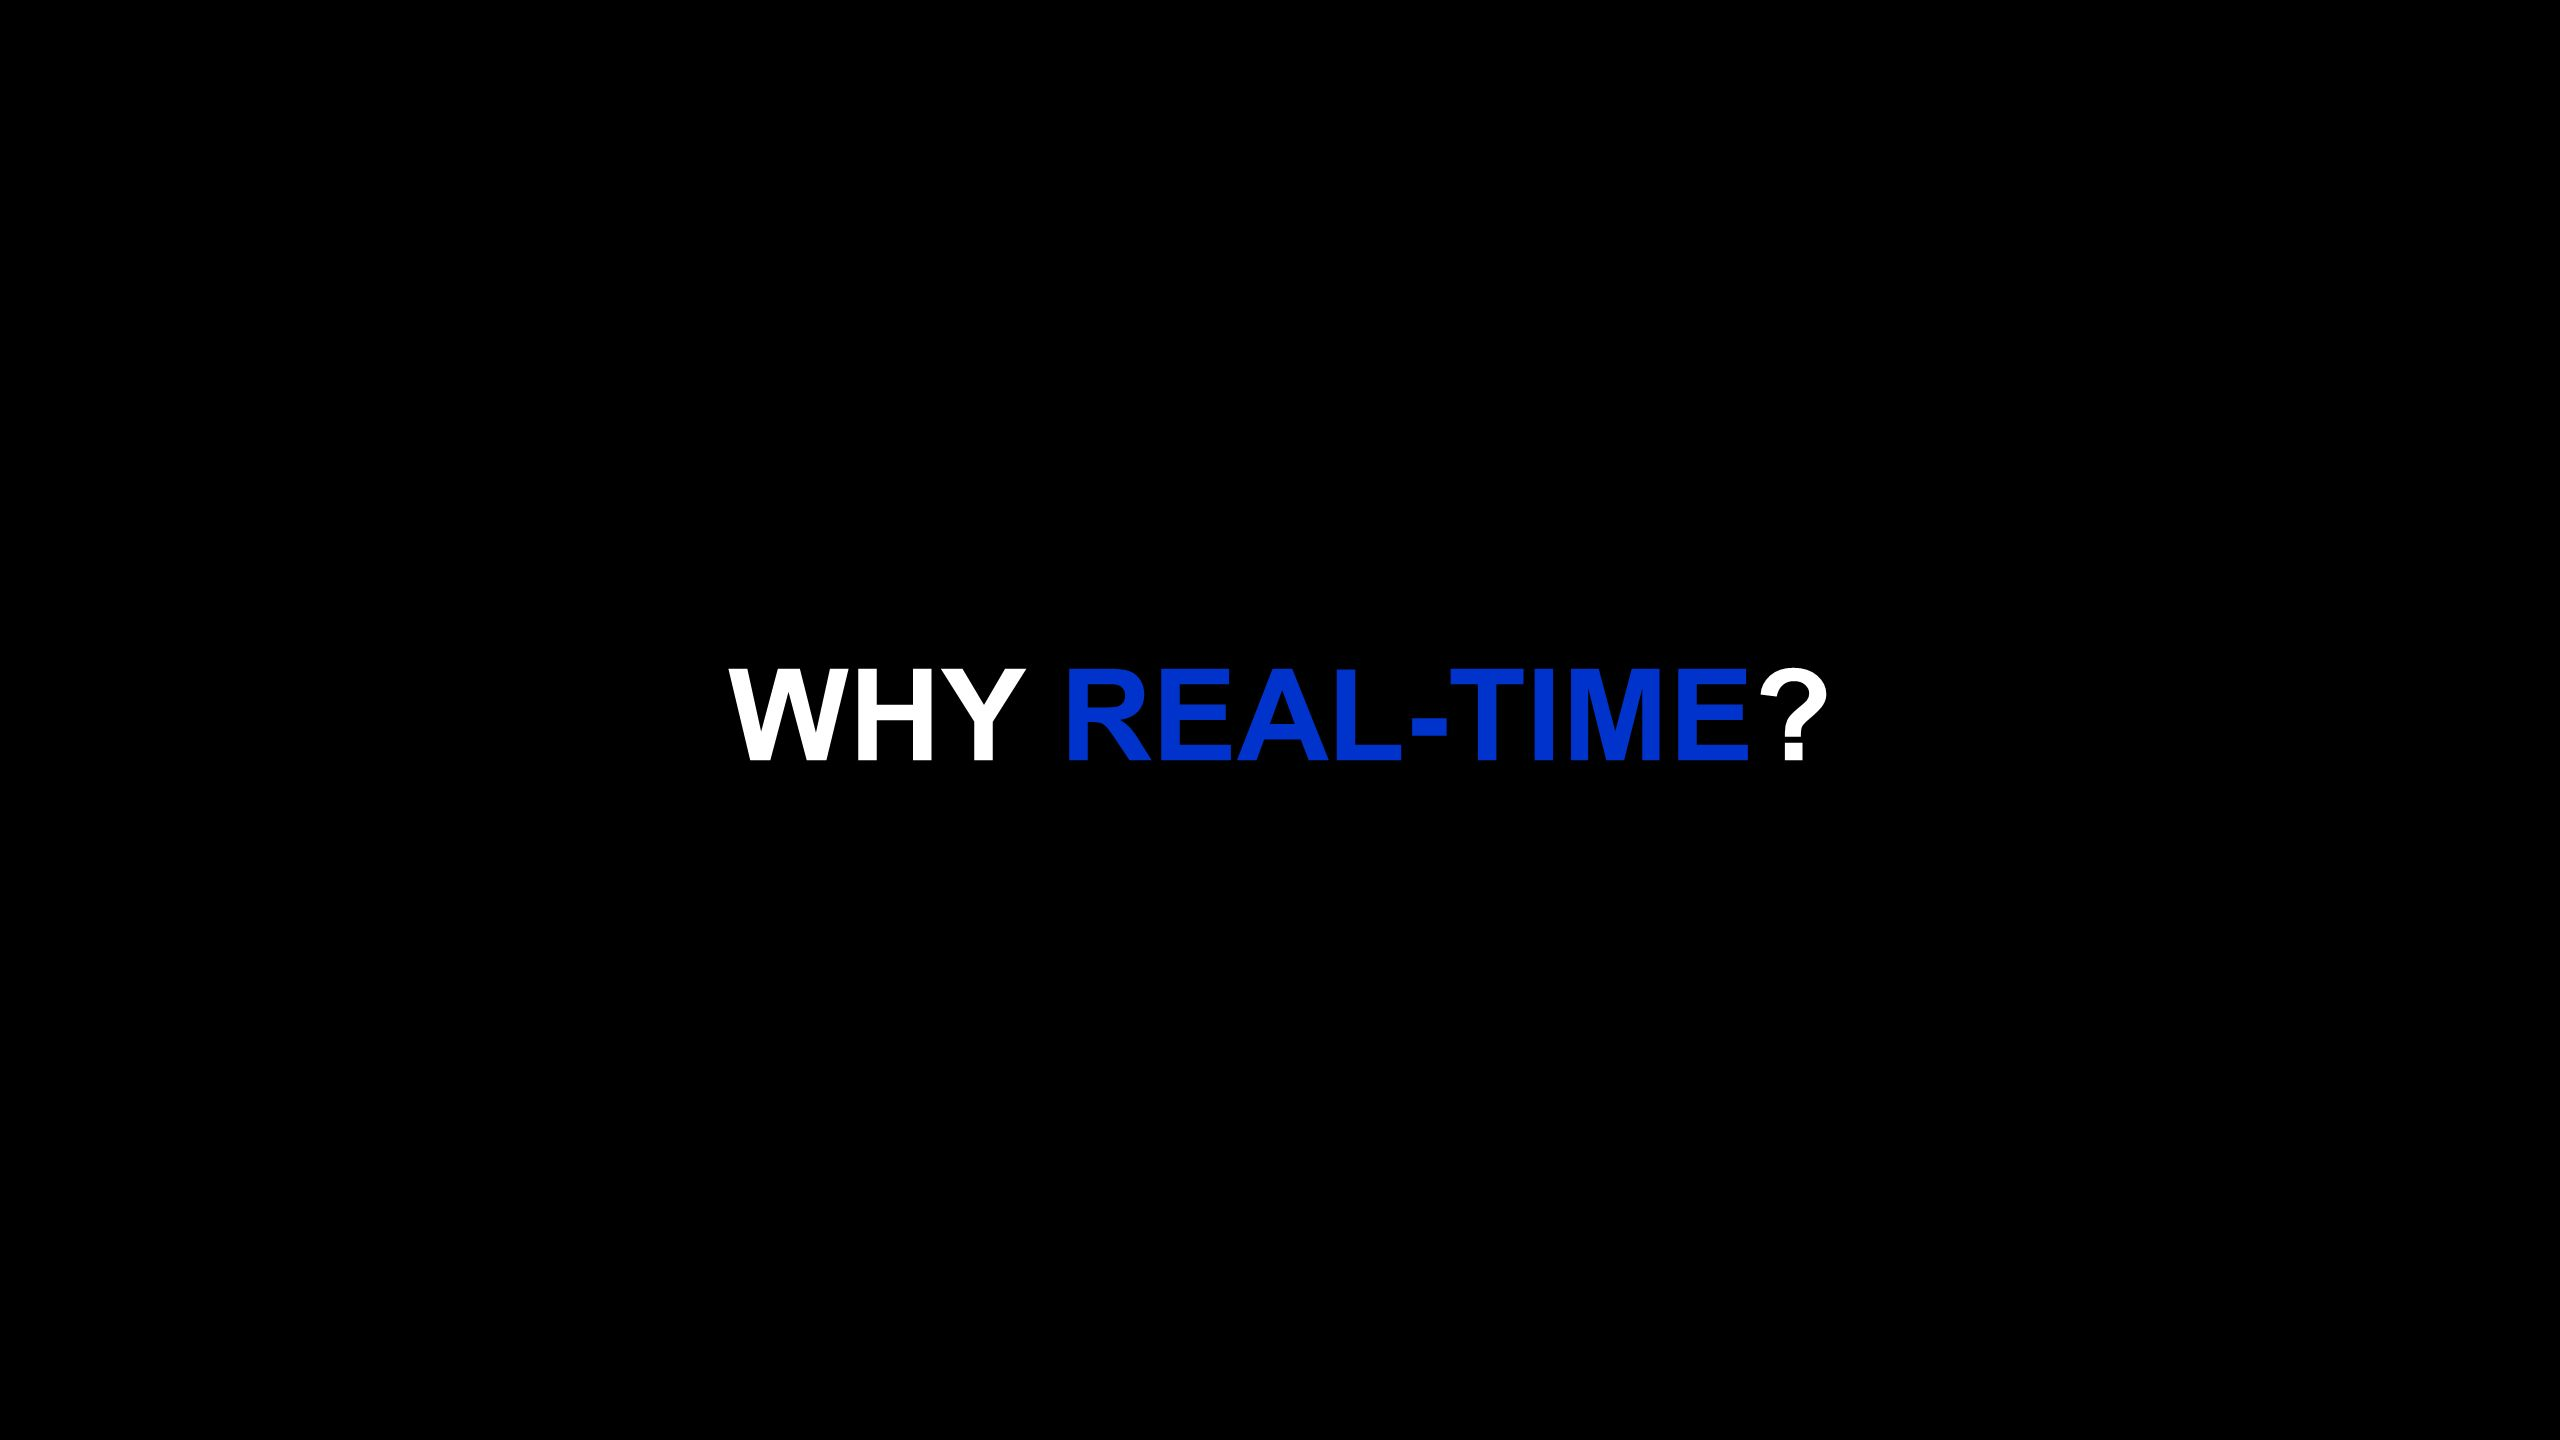 WHY REAL-TIME